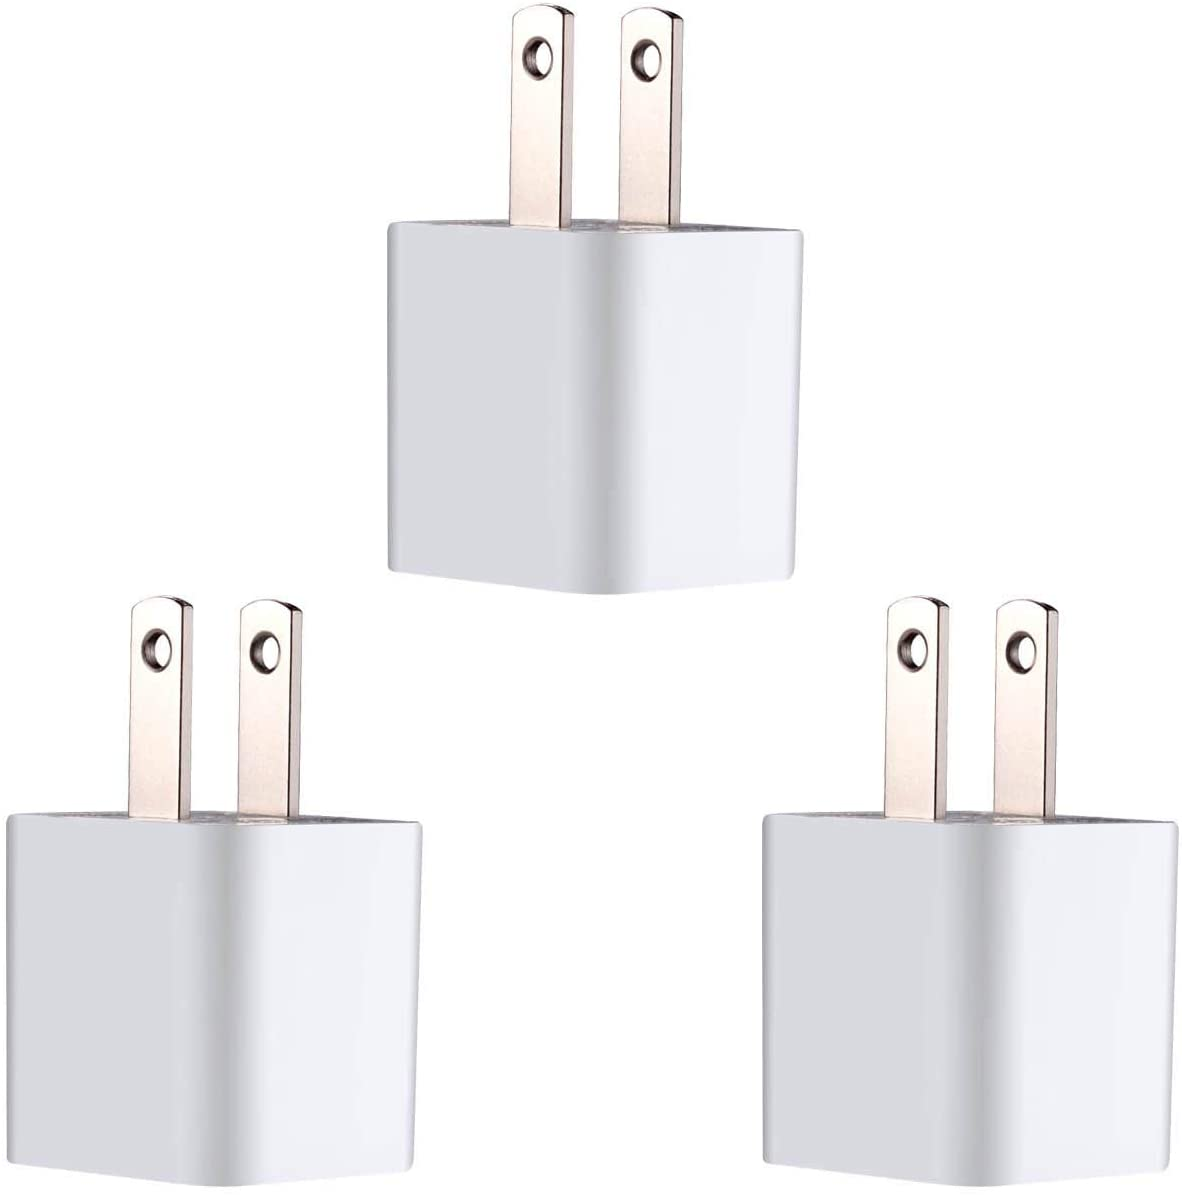 ZLONXUN Wall Charger Block Power Adapter Plug Charging Cube for All iPhones, iPod Touch (3 Pack)